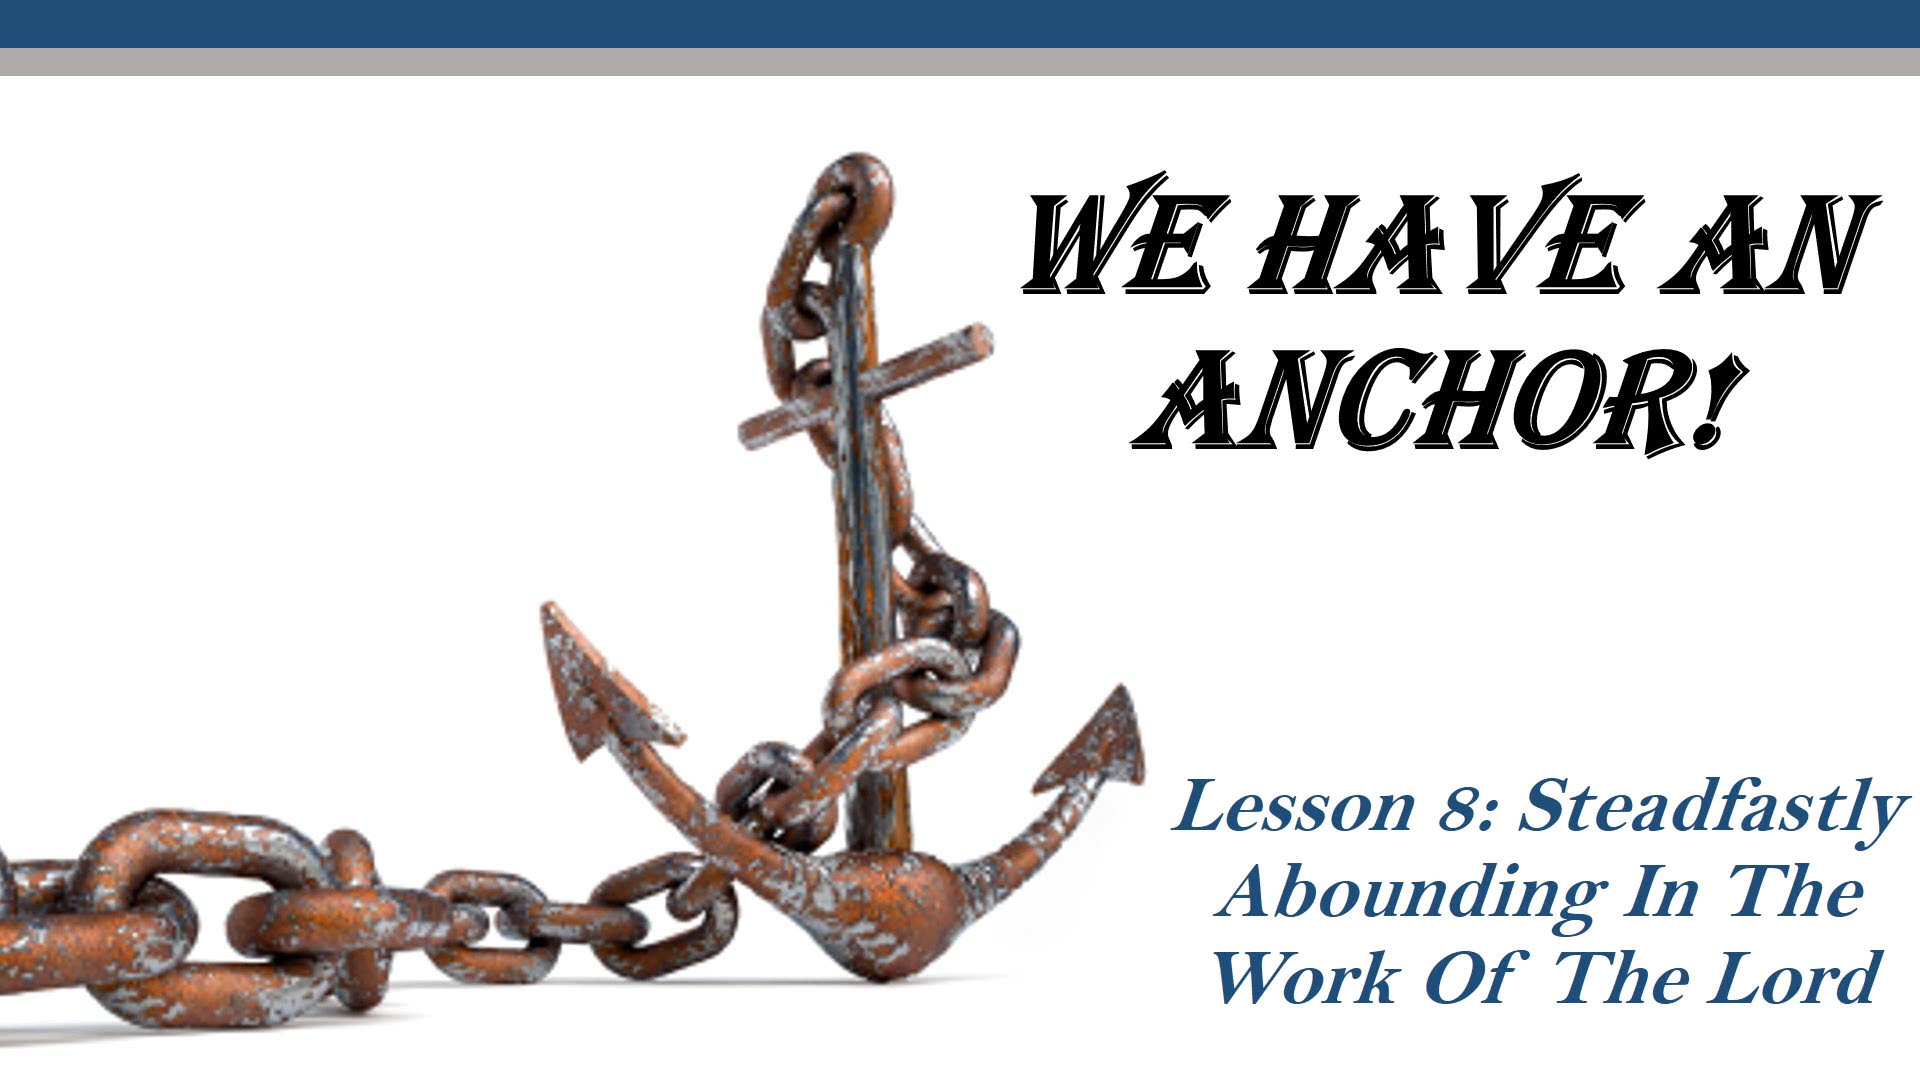 We Have An Anchor (Lesson 8: Steadfastly Abounding In The Work Of The Lord)